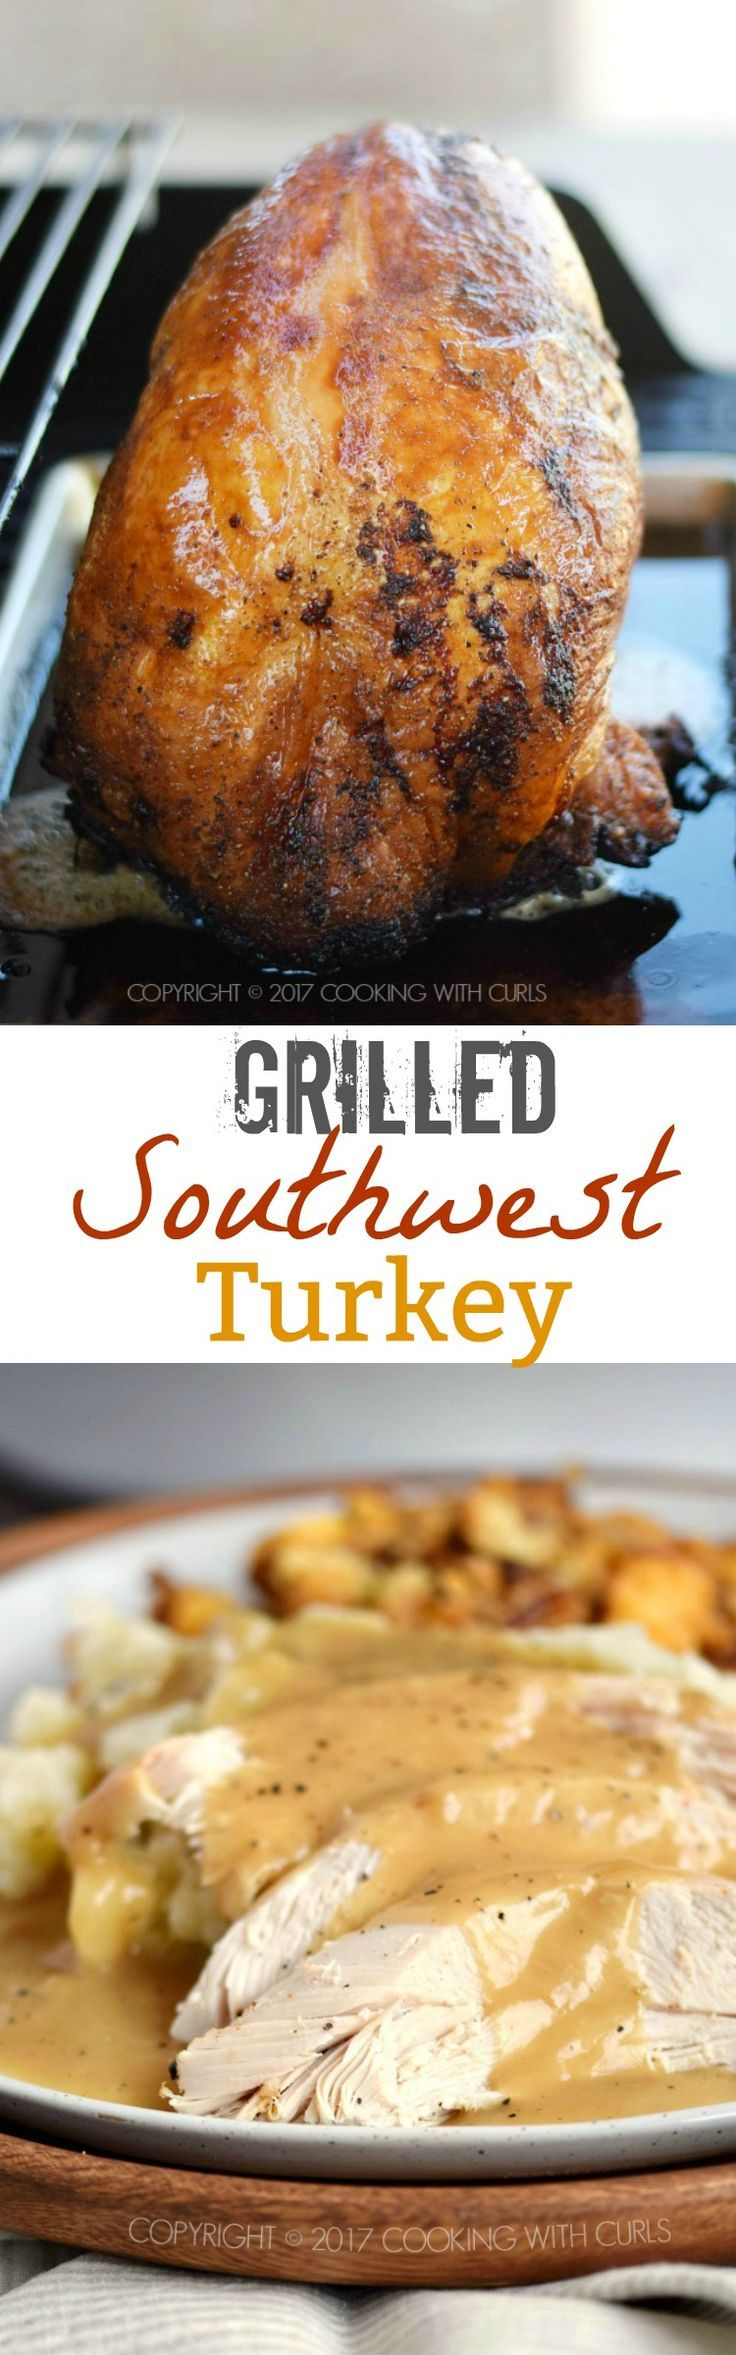 Don't have double ovens That won't be a problem with this Grilled Southwest Turkey! It's moist and delicious with lots of crispy skin | COPYRIGHT ©️️ 2017 COOKING WITH CURLS